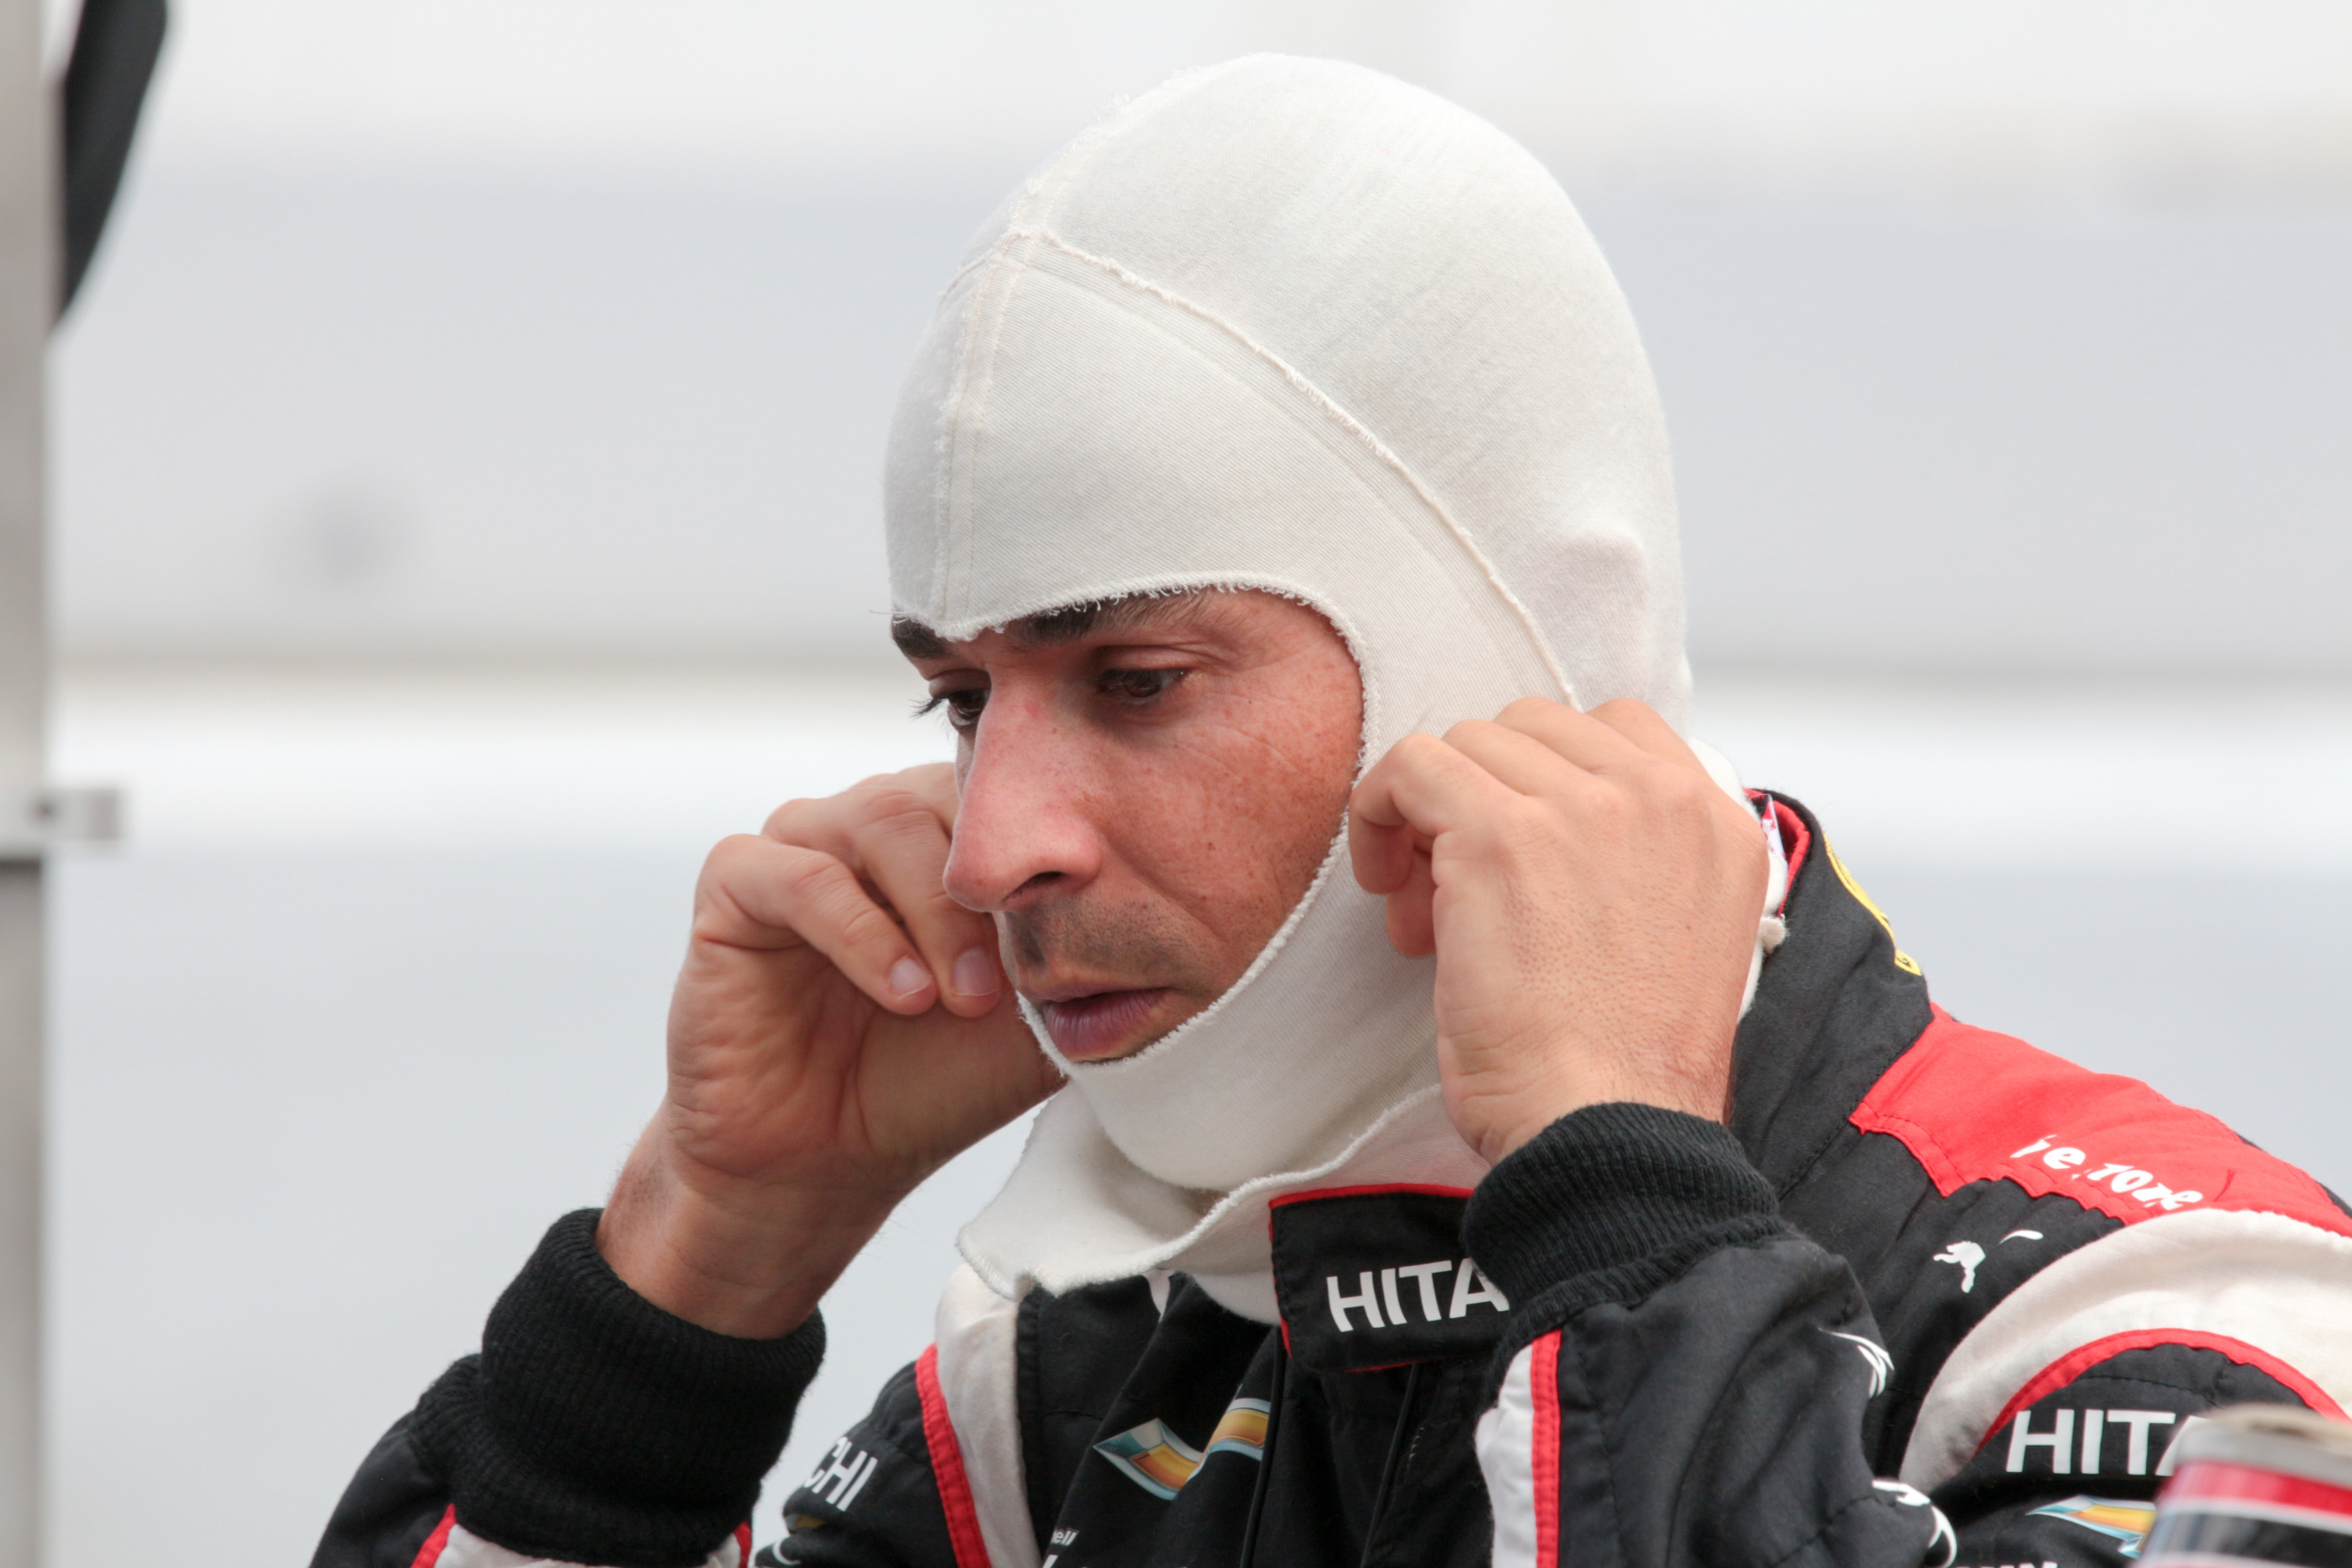 Team Penske Driver Helio Castroneves gets ready for qualifying.